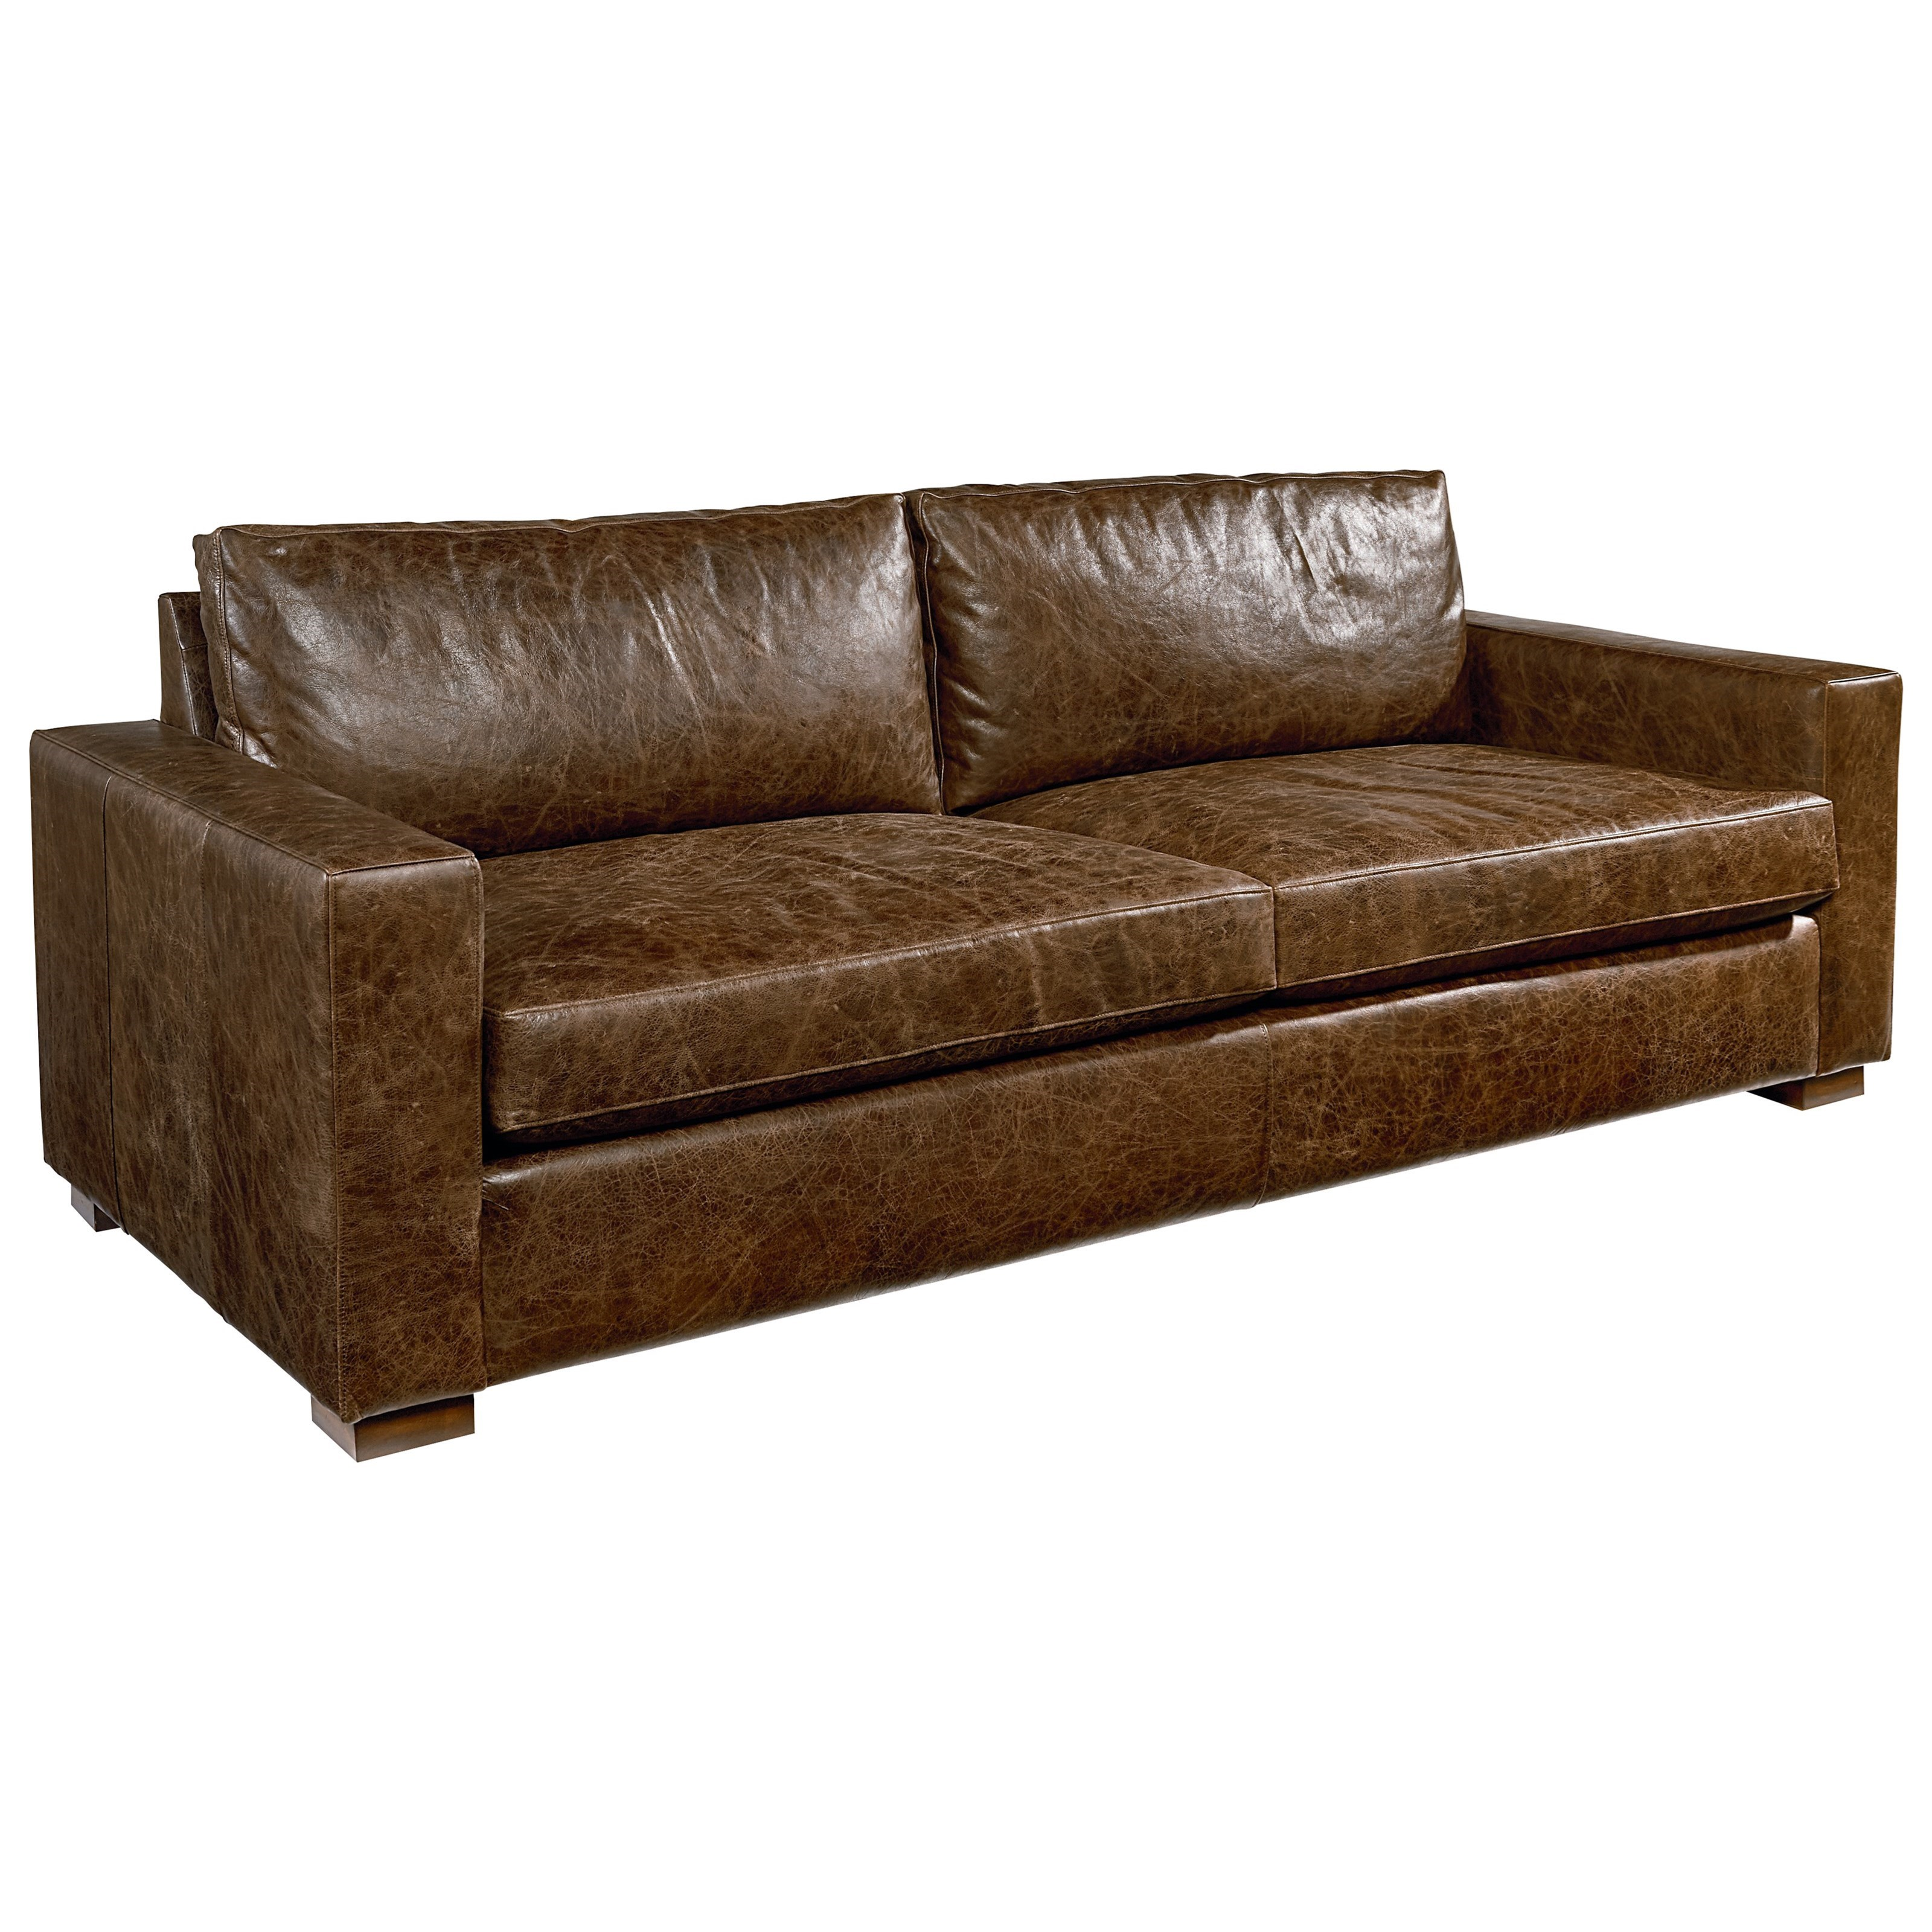 Leather Sofa By Magnolia Home By Joanna Gaines Wolf And Gardiner Wolf Furniture